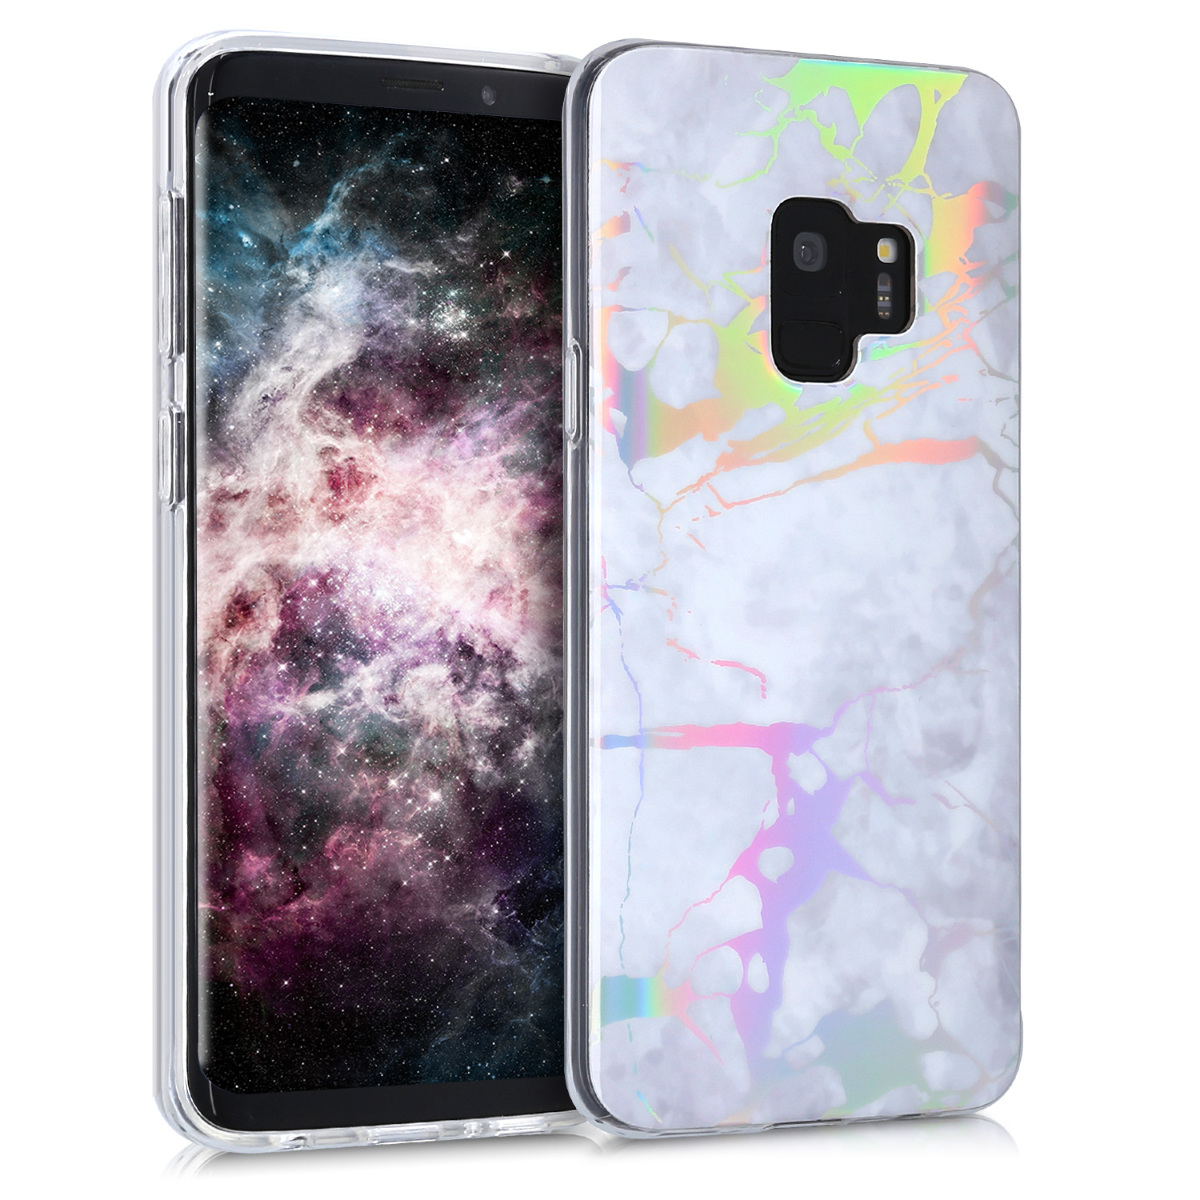 Pouzdro pro Samsung Galaxy S9 - TPU Crystal Clear Back Protective Cover IMD Design - Marble White / Silver